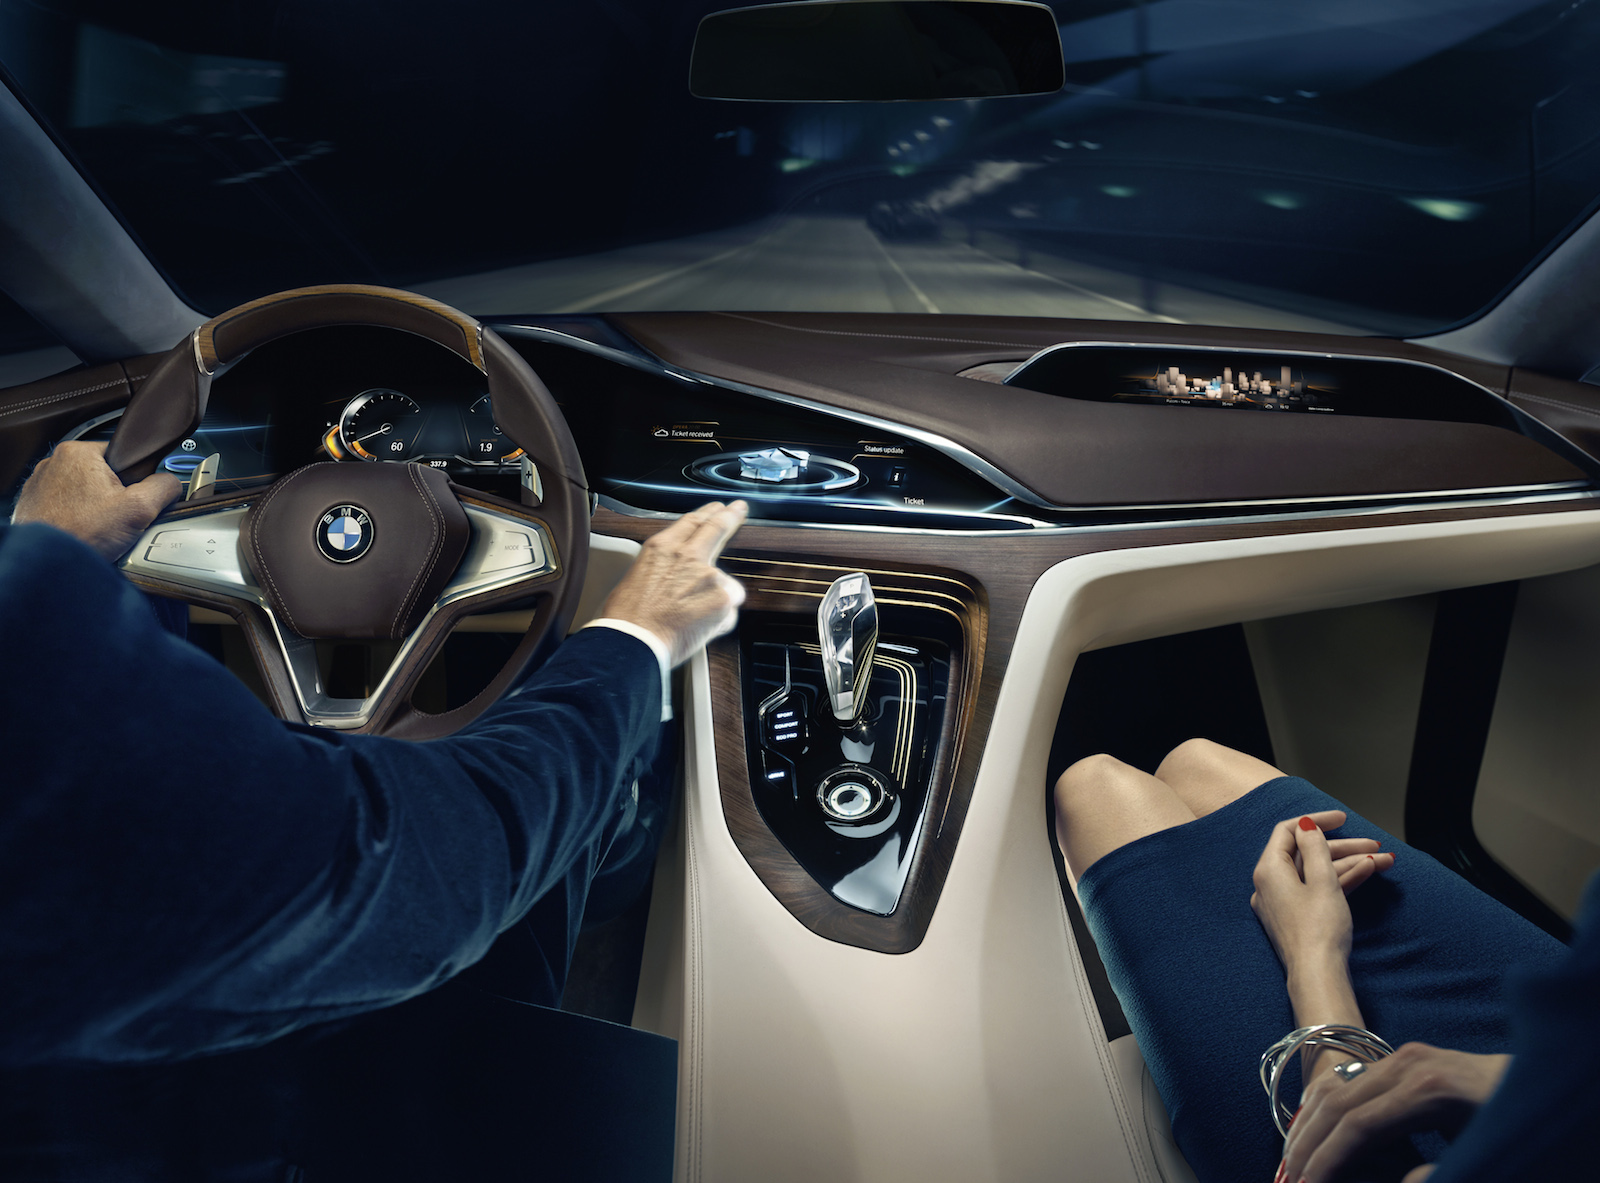 bmw-vision-future-luxury_100475105_h